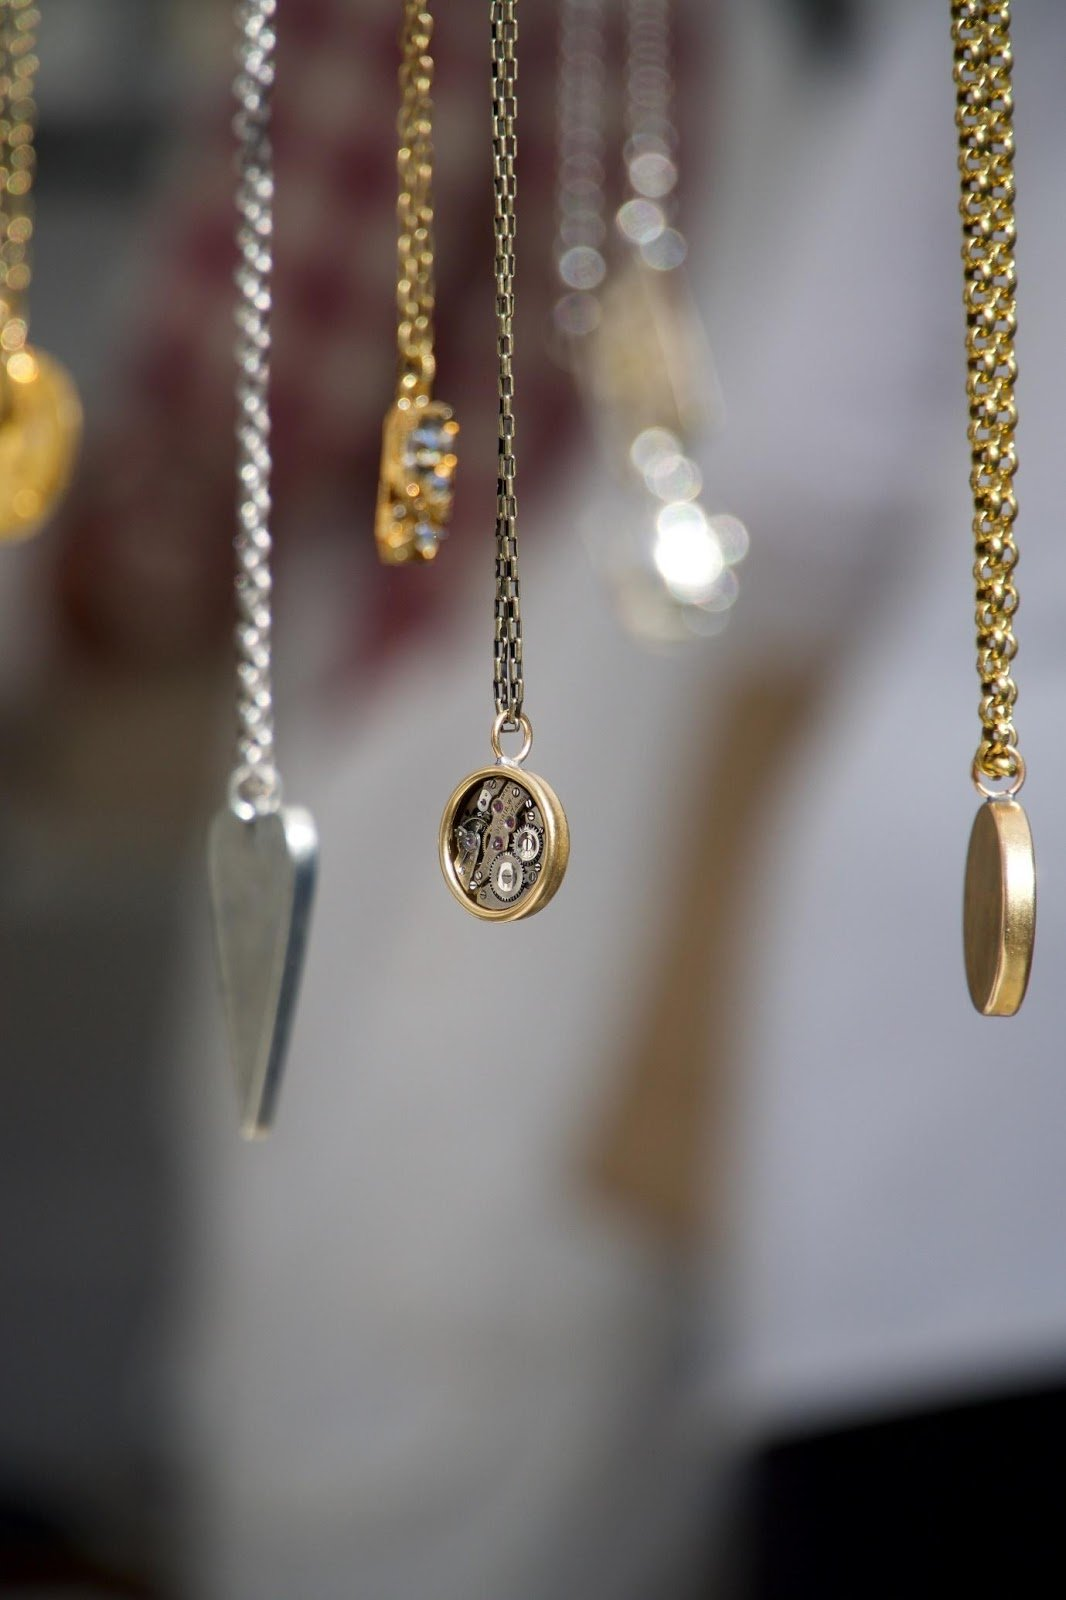 Why your jewelry photographs don't come out as imagined